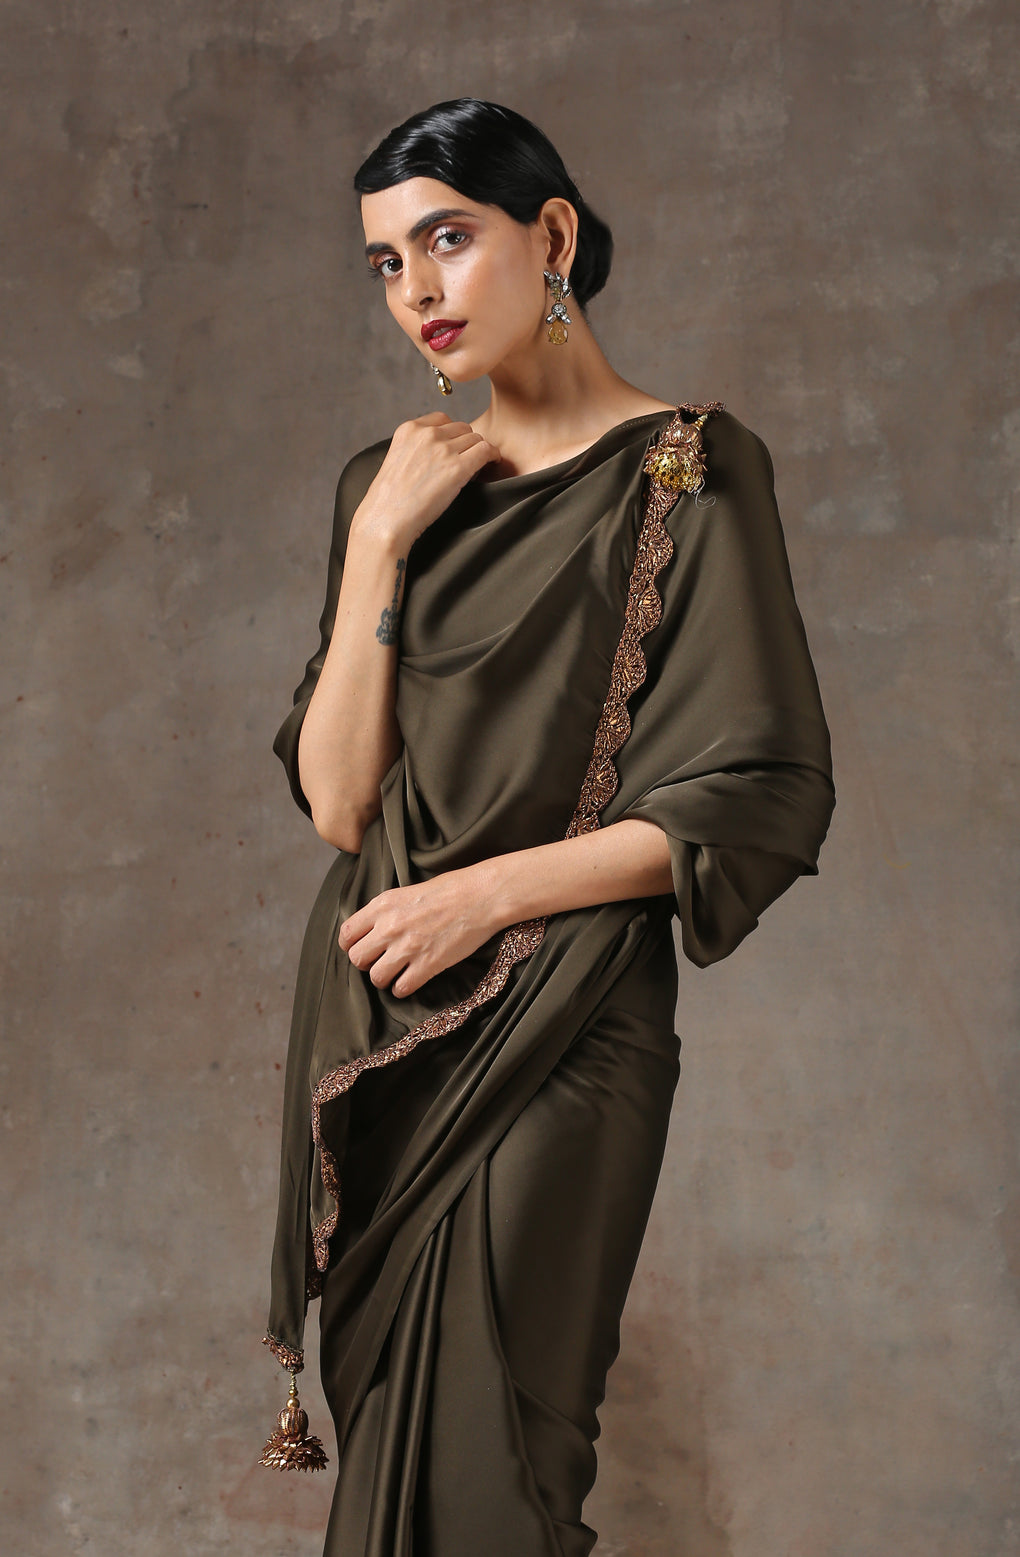 Olive Satin Saree with Bronze Handmade Lace & Pendant